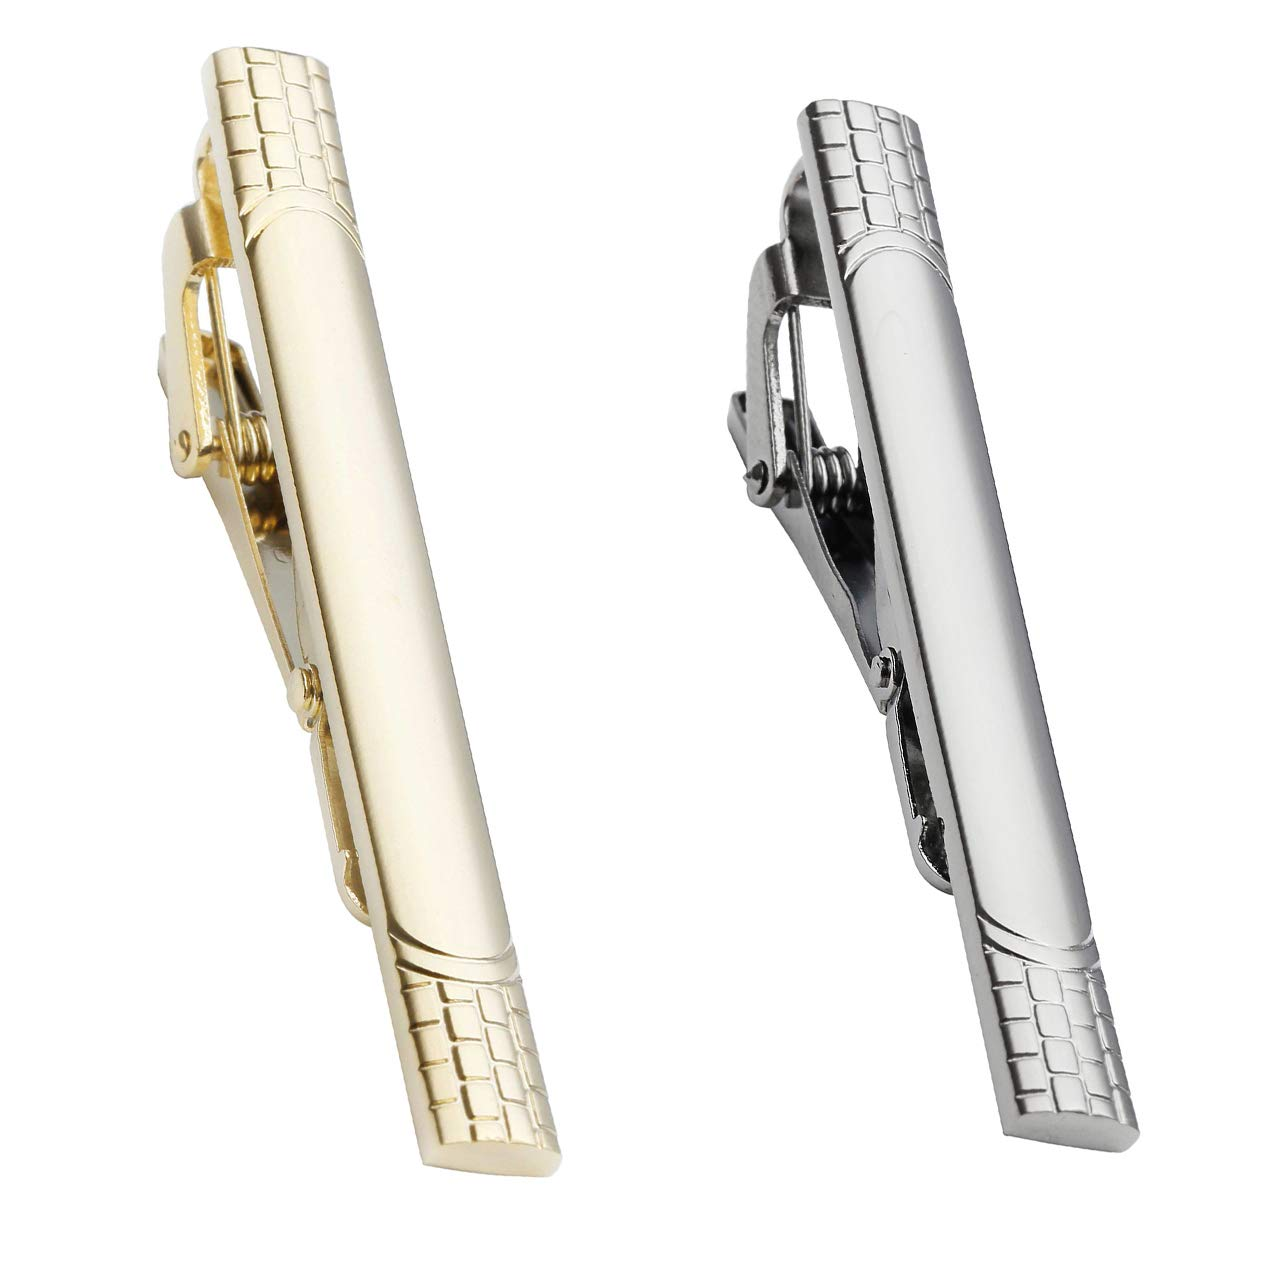 Zysta 2PCS Plaid Checkered Style Multiple Colors Elegant Skinny Tie Clips Set 2.3 Necktie Bar Pinch Tack Stainless Steel Polished Luxury Gift Box BBUS030156